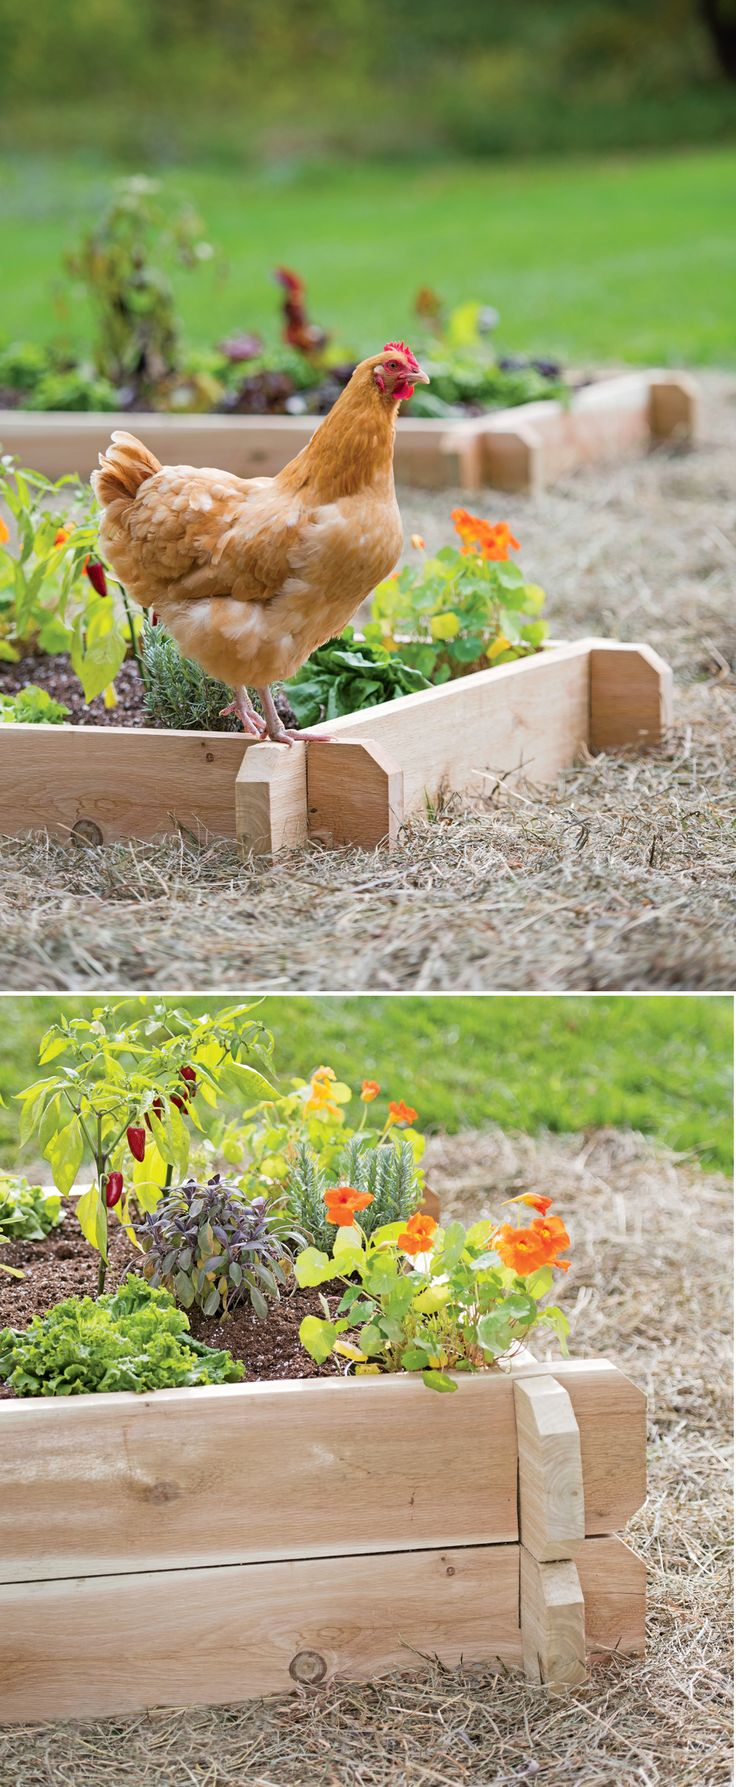 78 Best Images About Raised Beds Elevated Gardens On Pinterest Gardens Garden Planner And